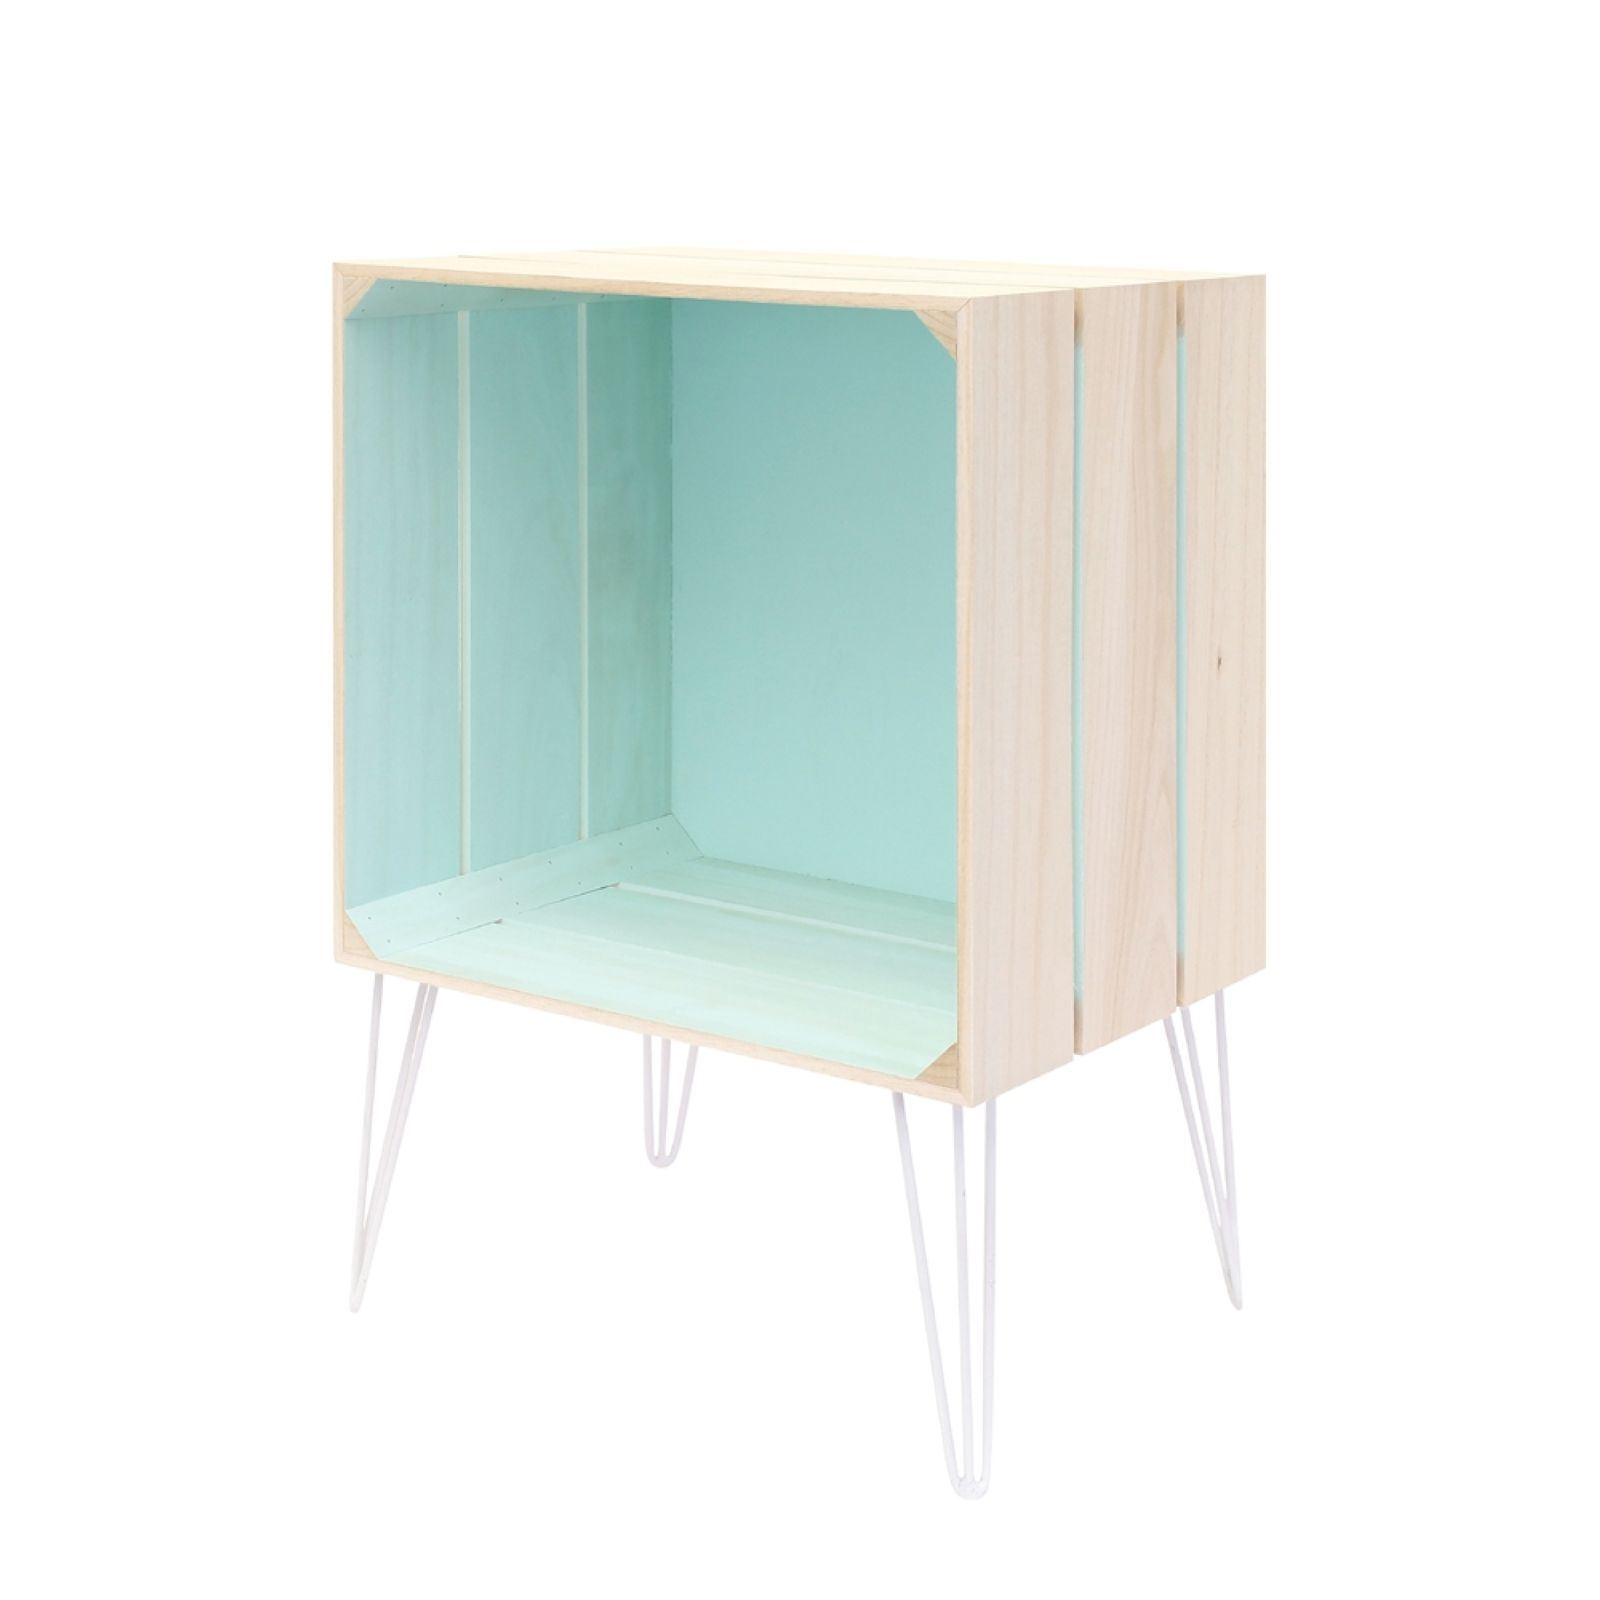 Affordable The Home Deco Factory Meuble Cagette Turquoise